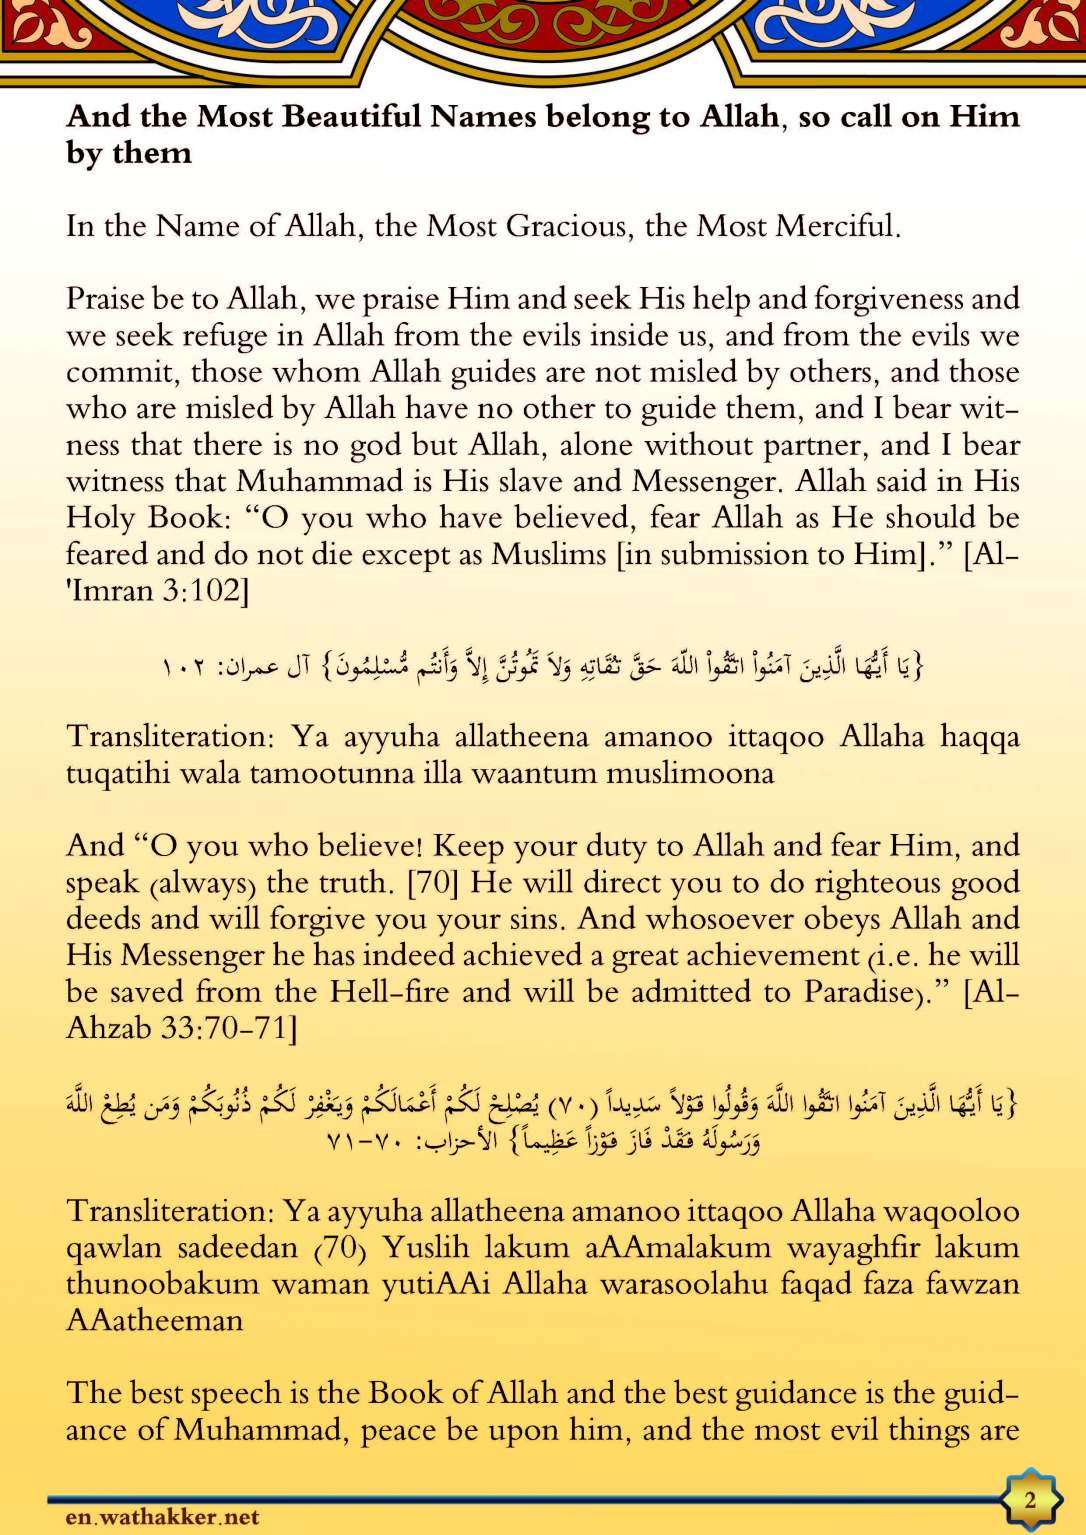 TheMostBeautifulNamesBelongToAllah_Page_02